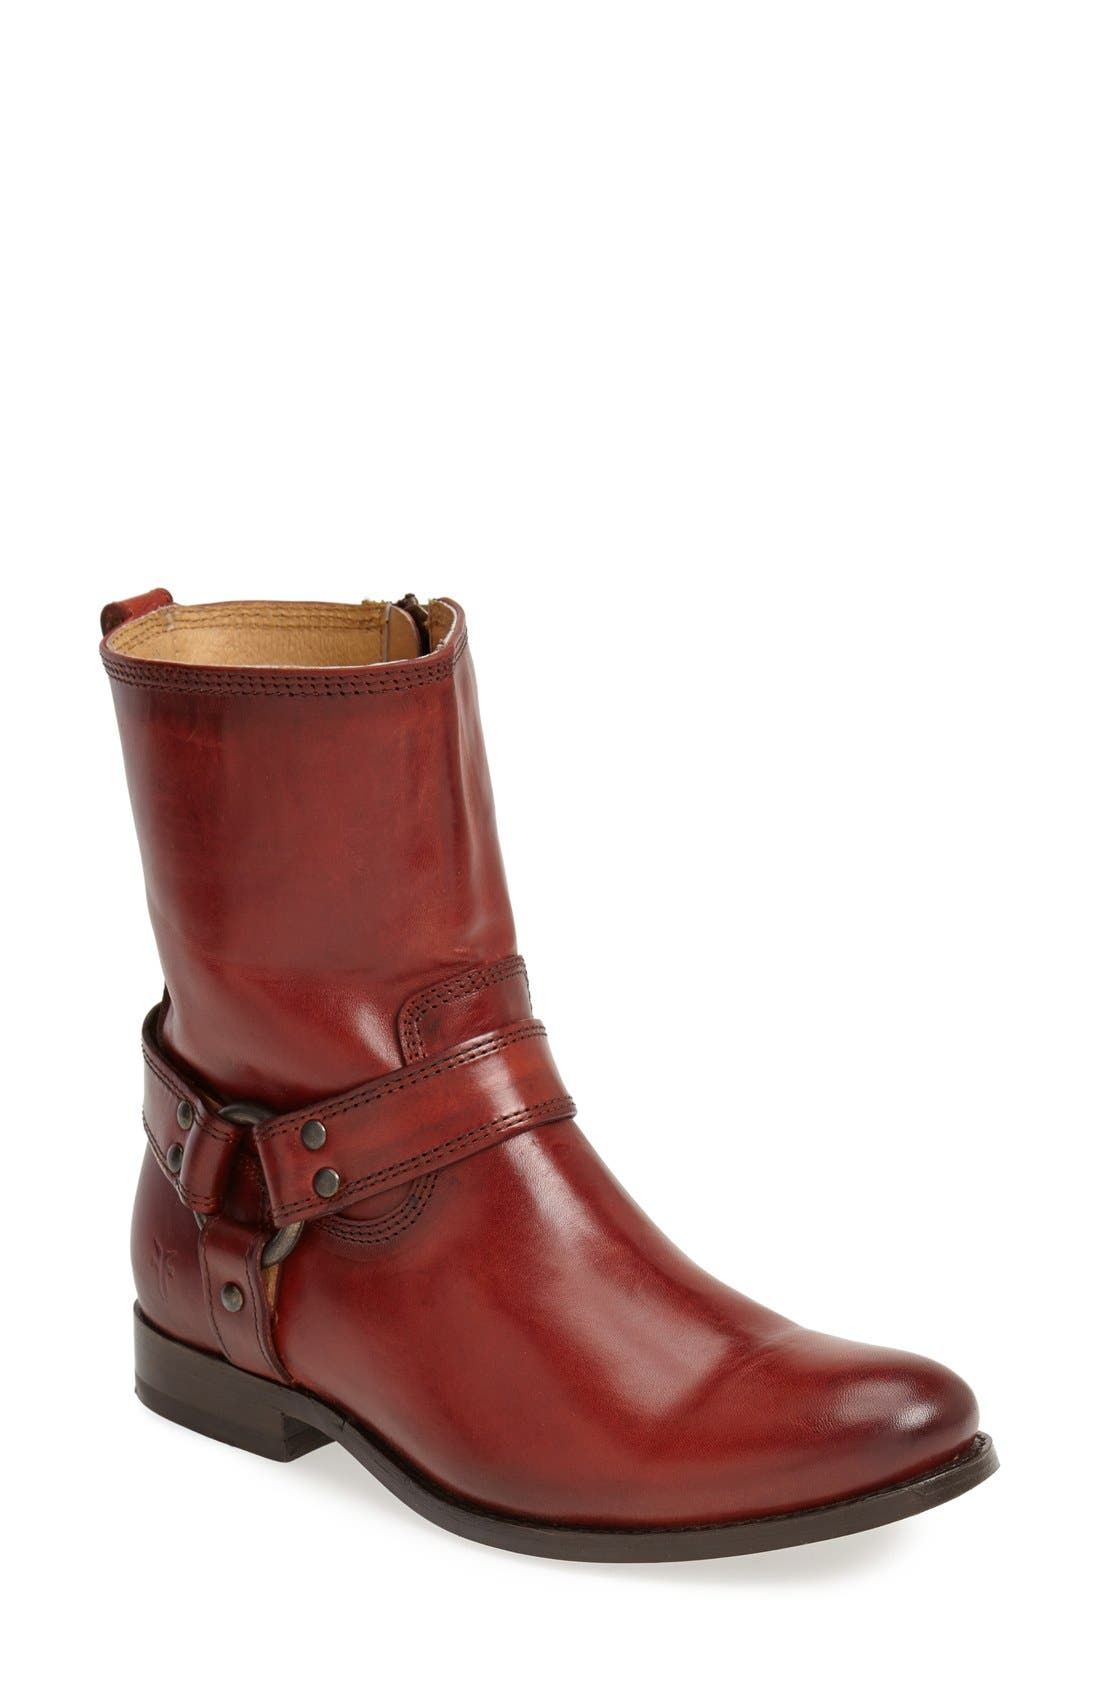 Main Image - Frye 'Melissa' Harness Boot (Women)